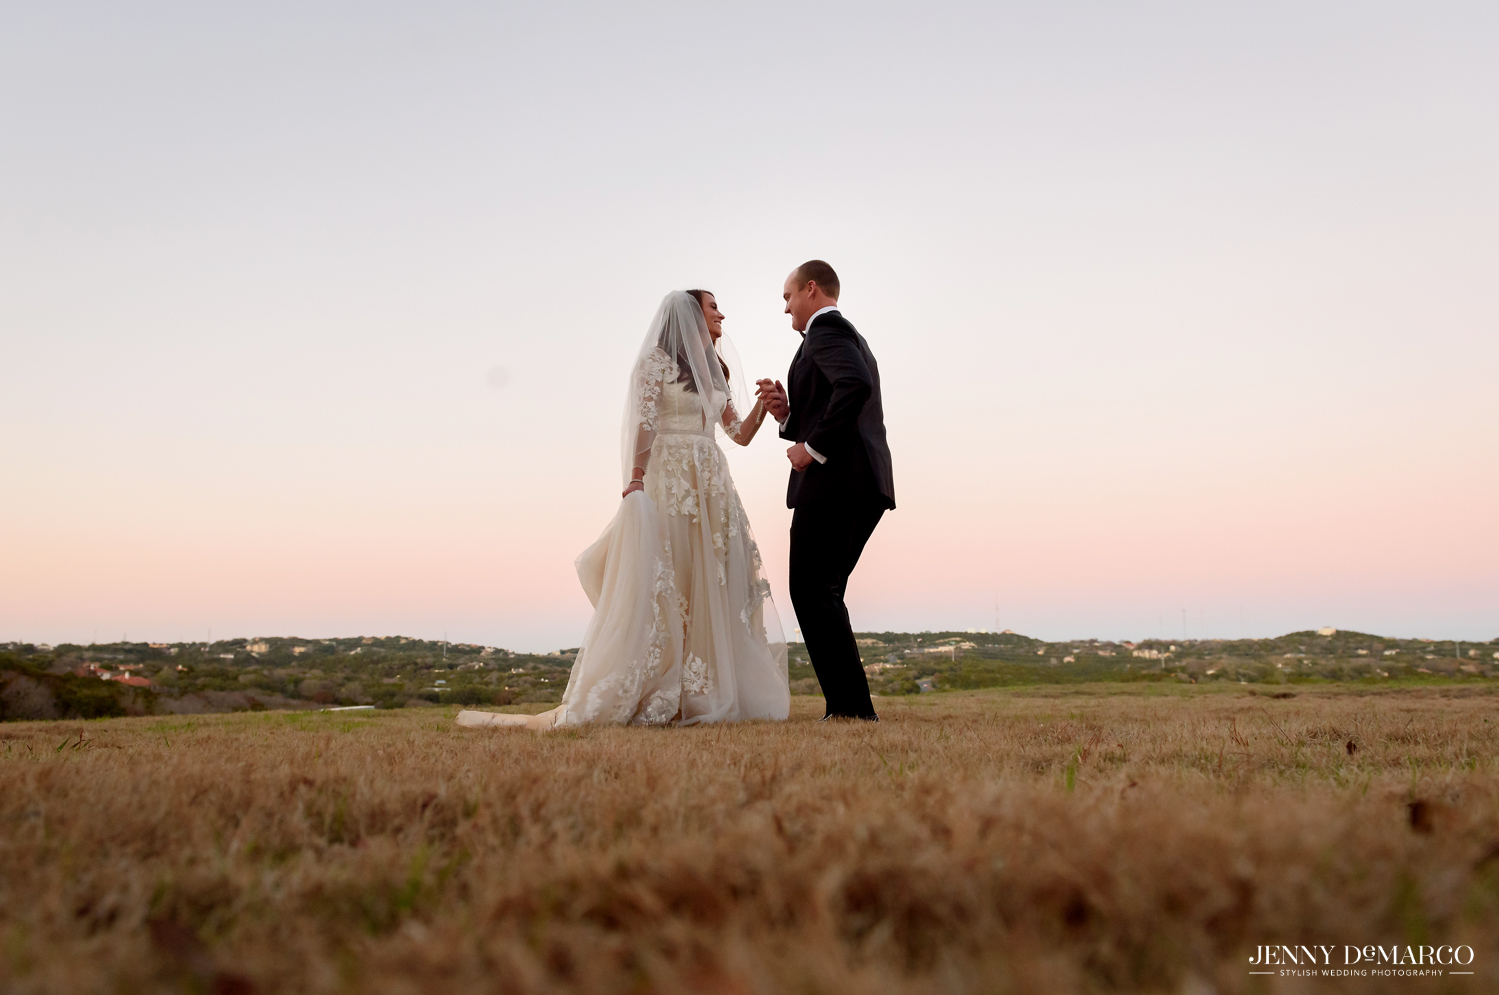 Bride and groom share a moment at sunset